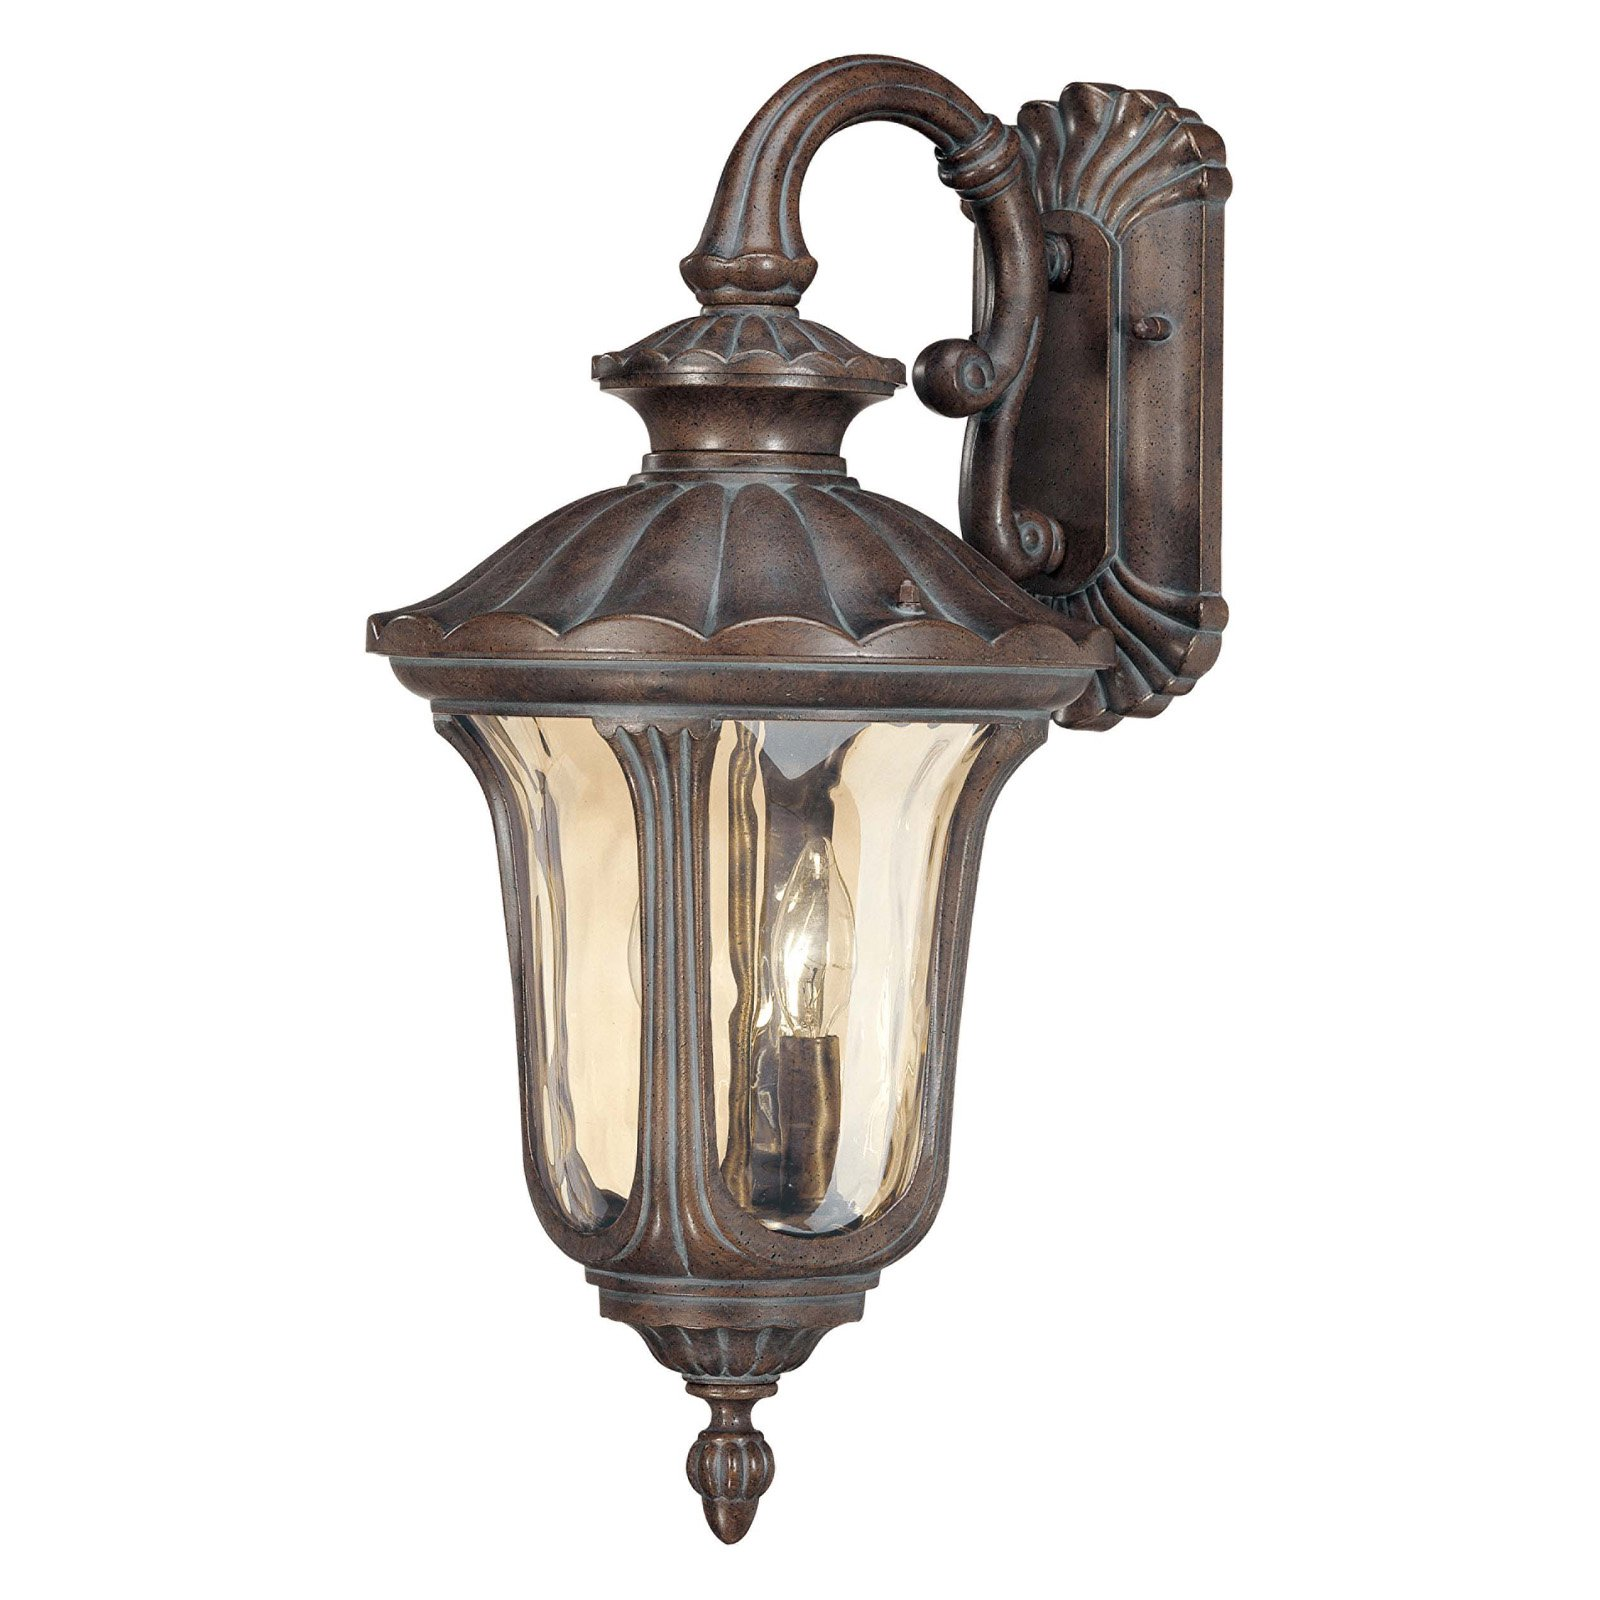 Nuvo Beaumont 60/2004 2-Light Mid-Size Wall Lamp - 11W in. - Fruitwood